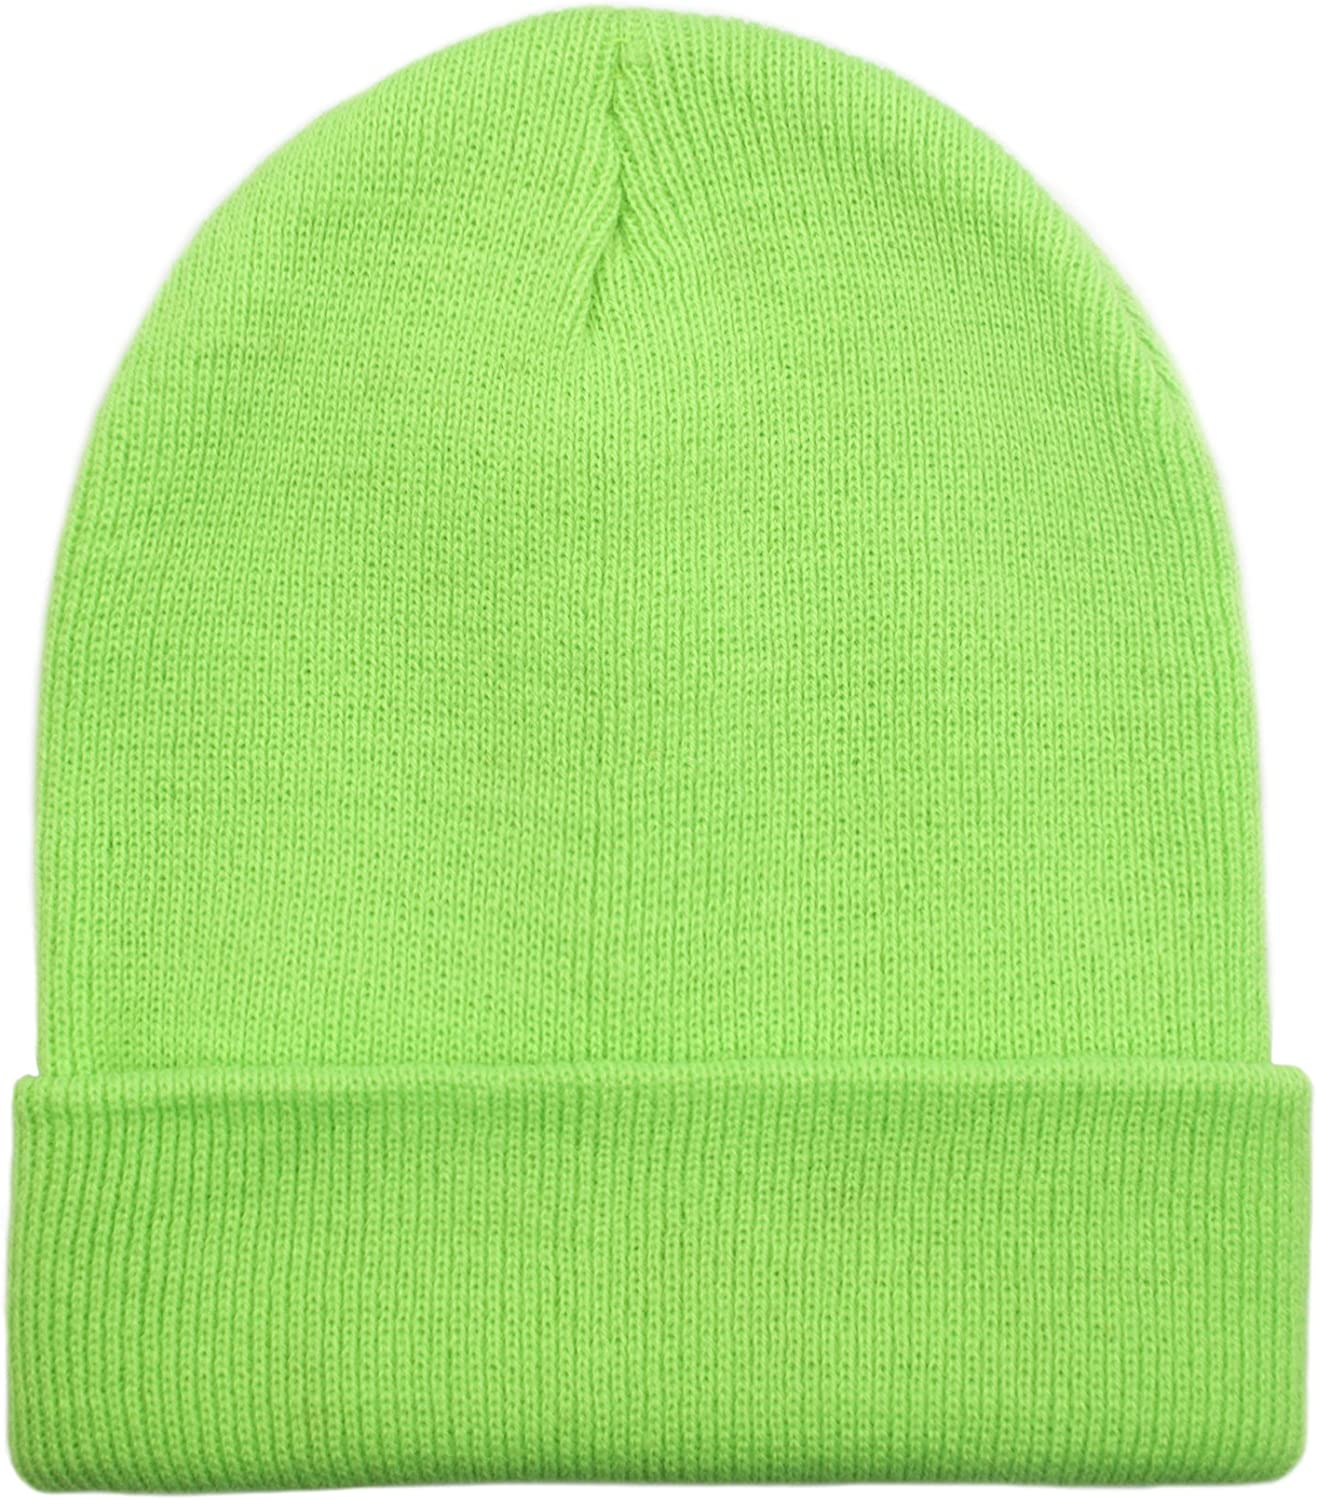 Acrylic Heavyweight Long Cuff Beanie Cap 10.5 inches-Neon Green Price//96 PCS Opromo